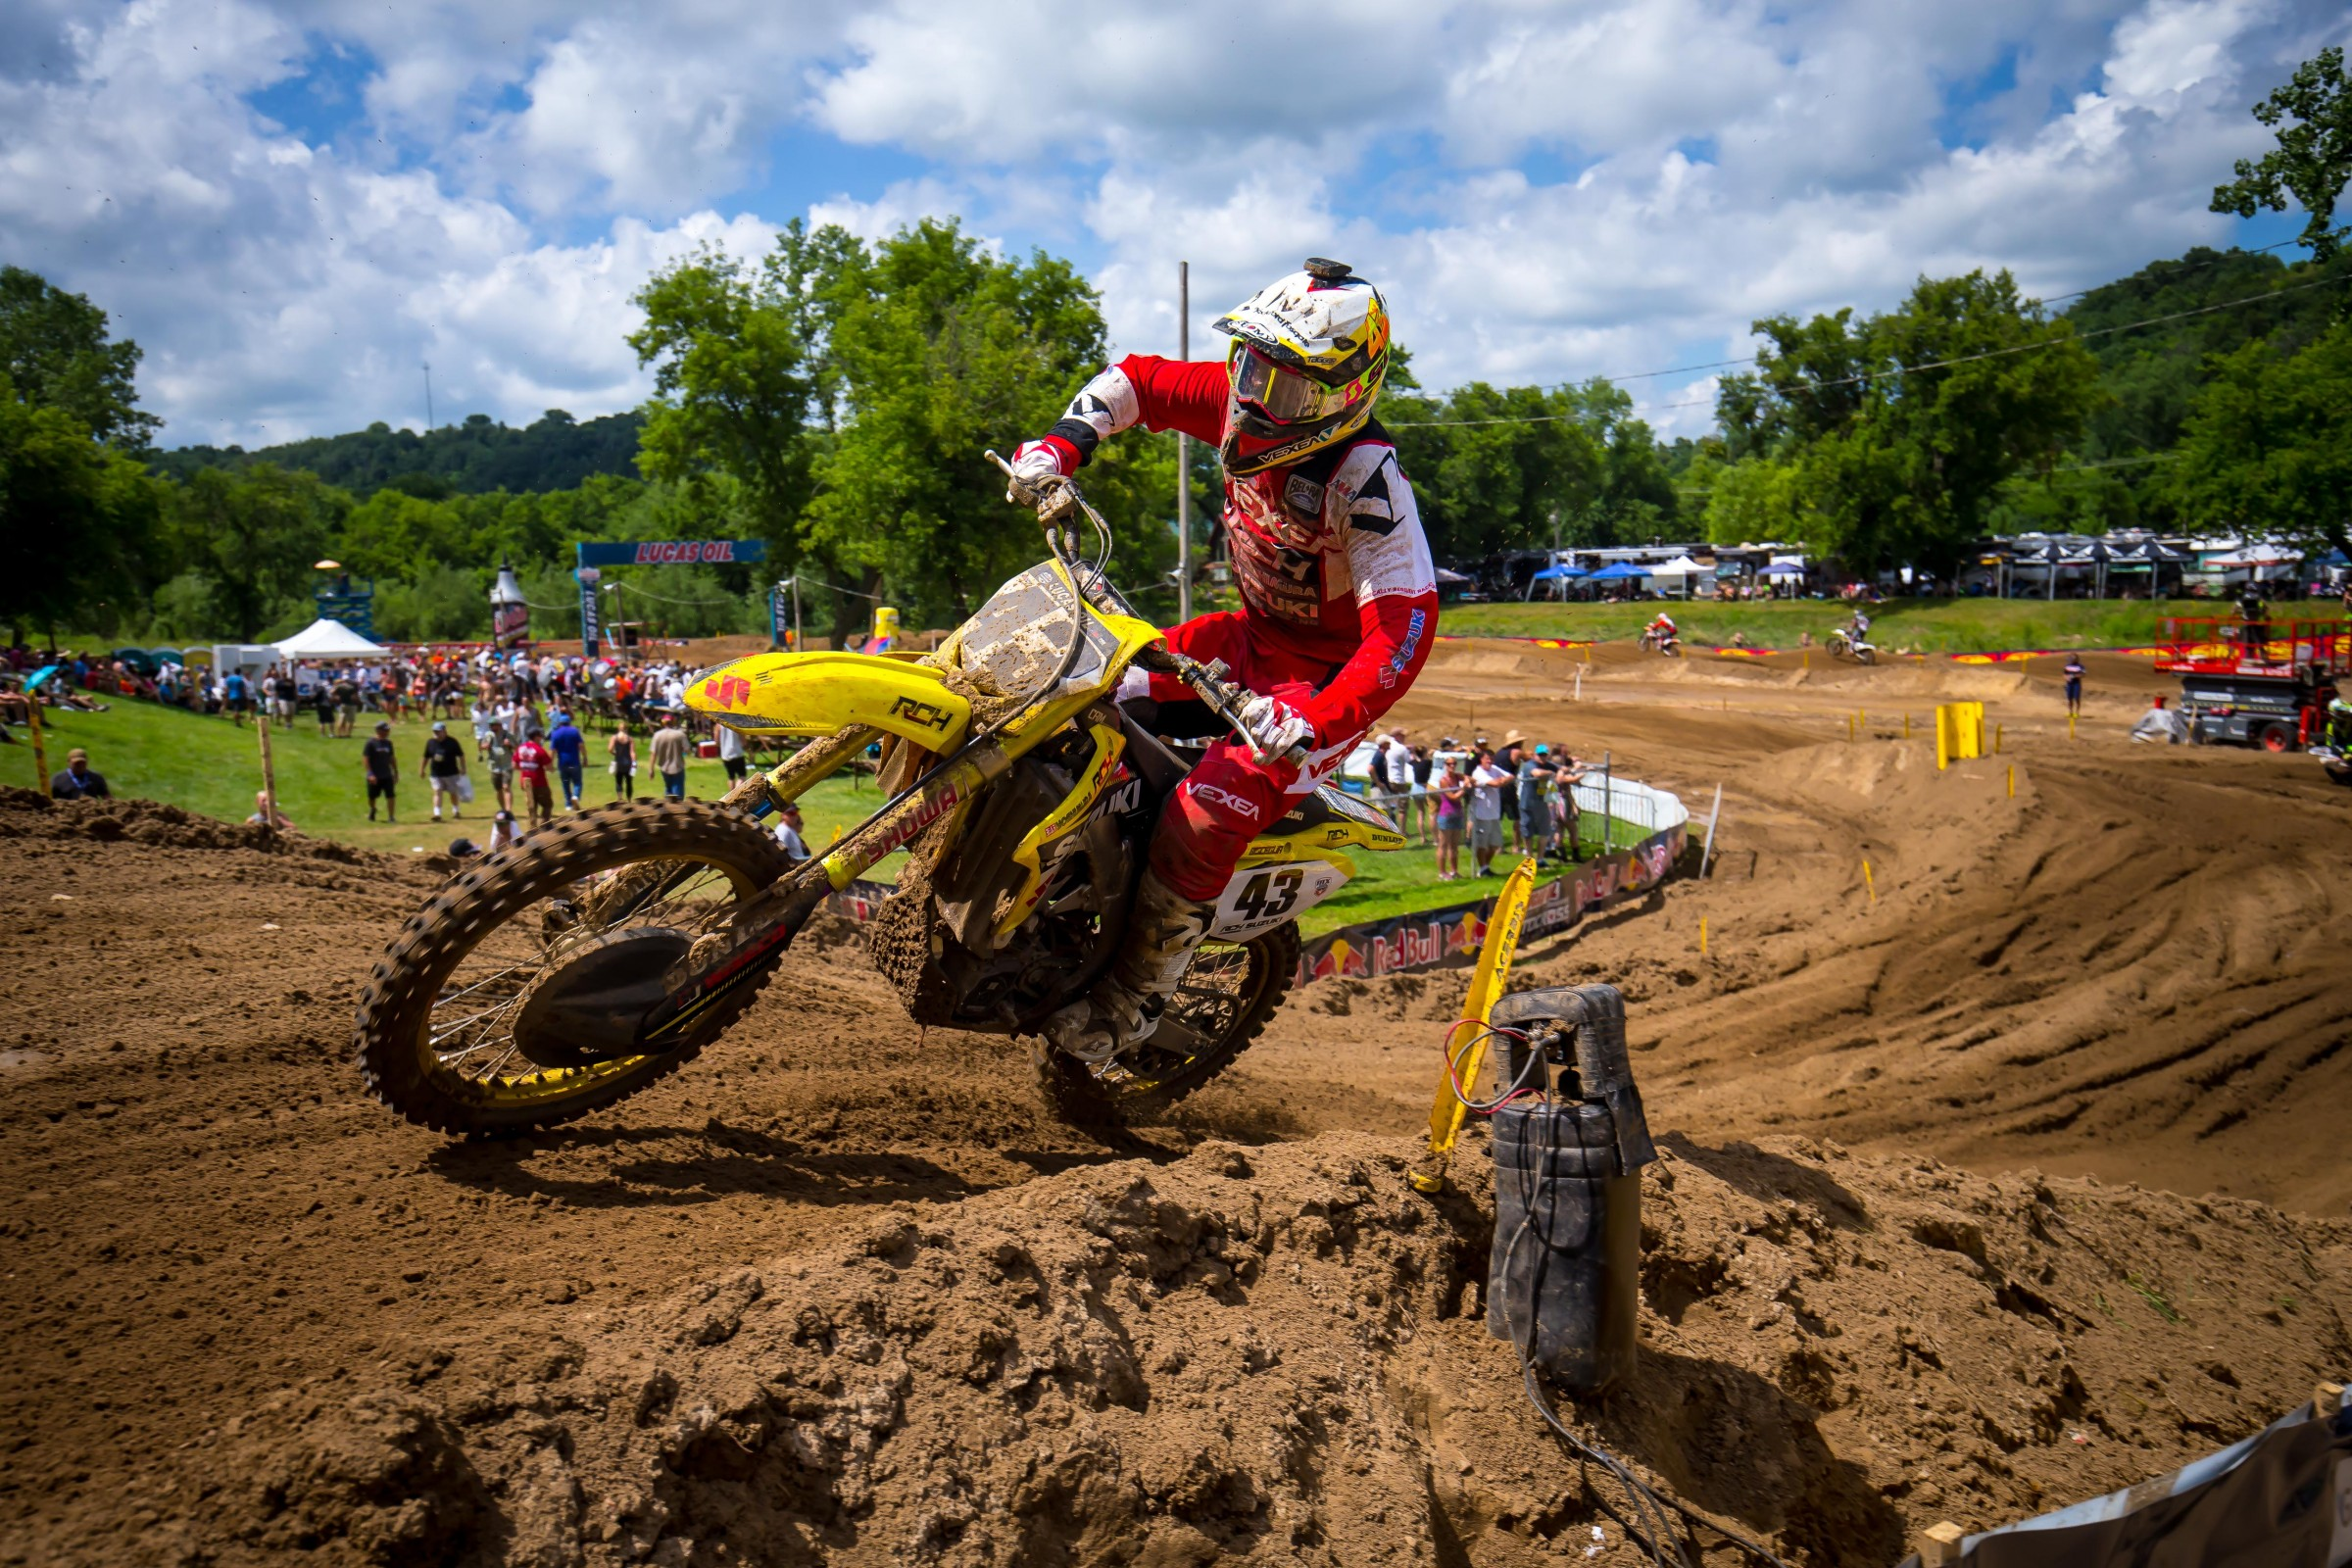 With a race under his belt and cooler temps expected in Washougal, Bisceglia should be better this weekend.